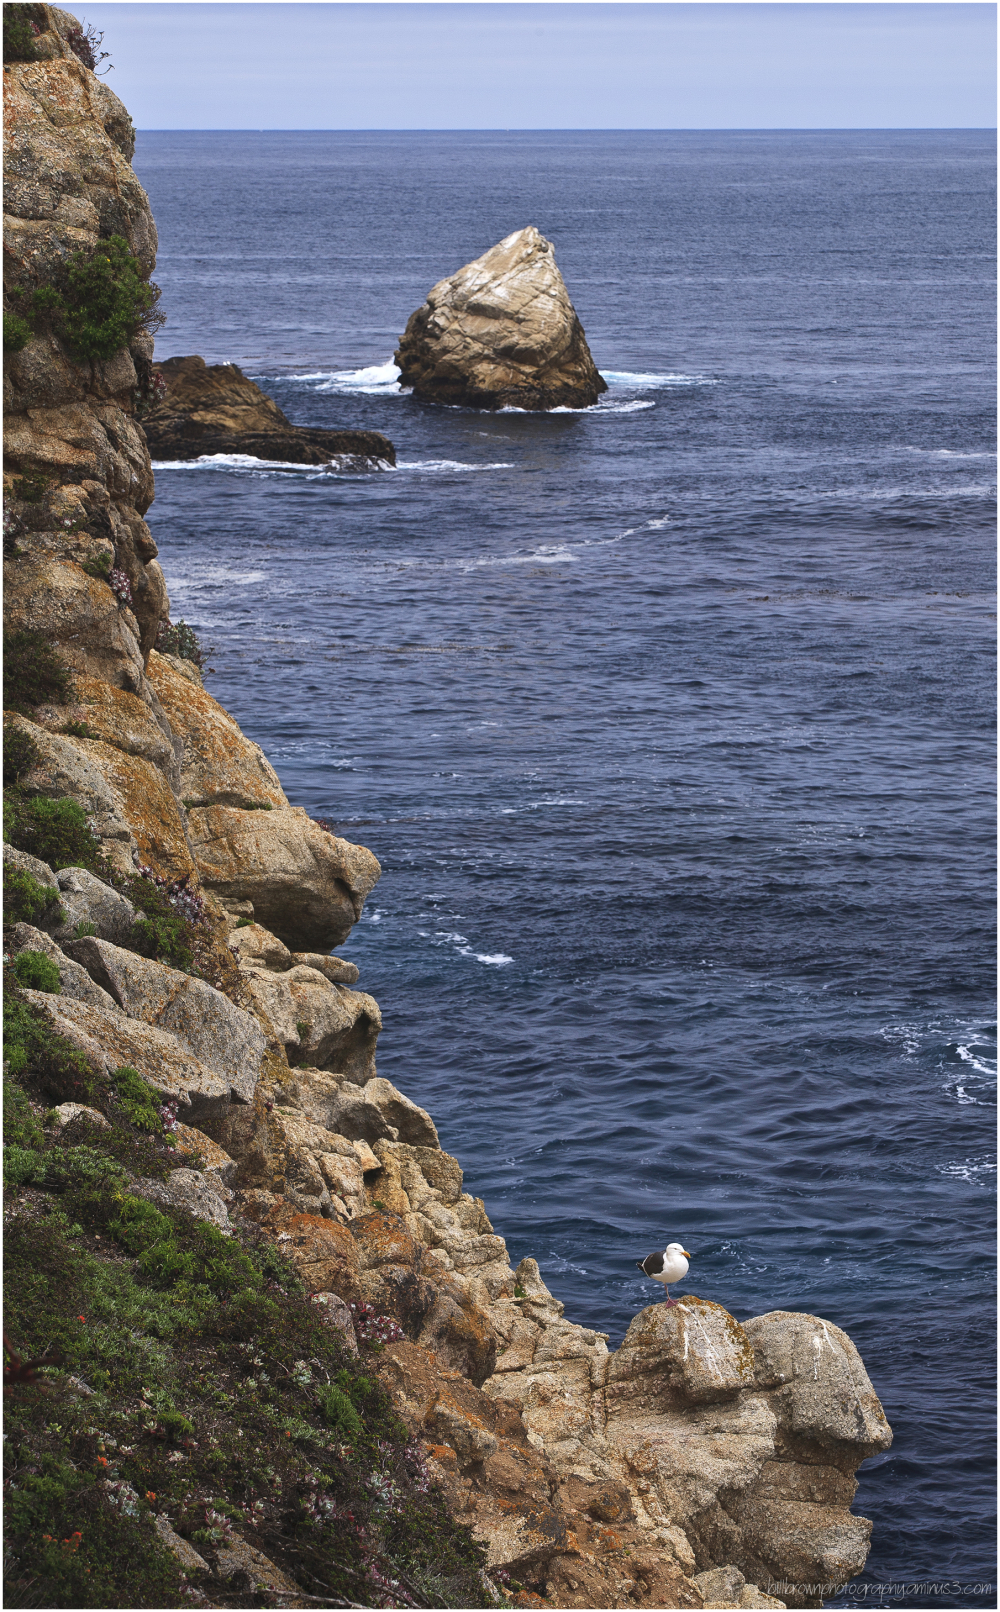 Gull and Sea Stack - Point Lobos